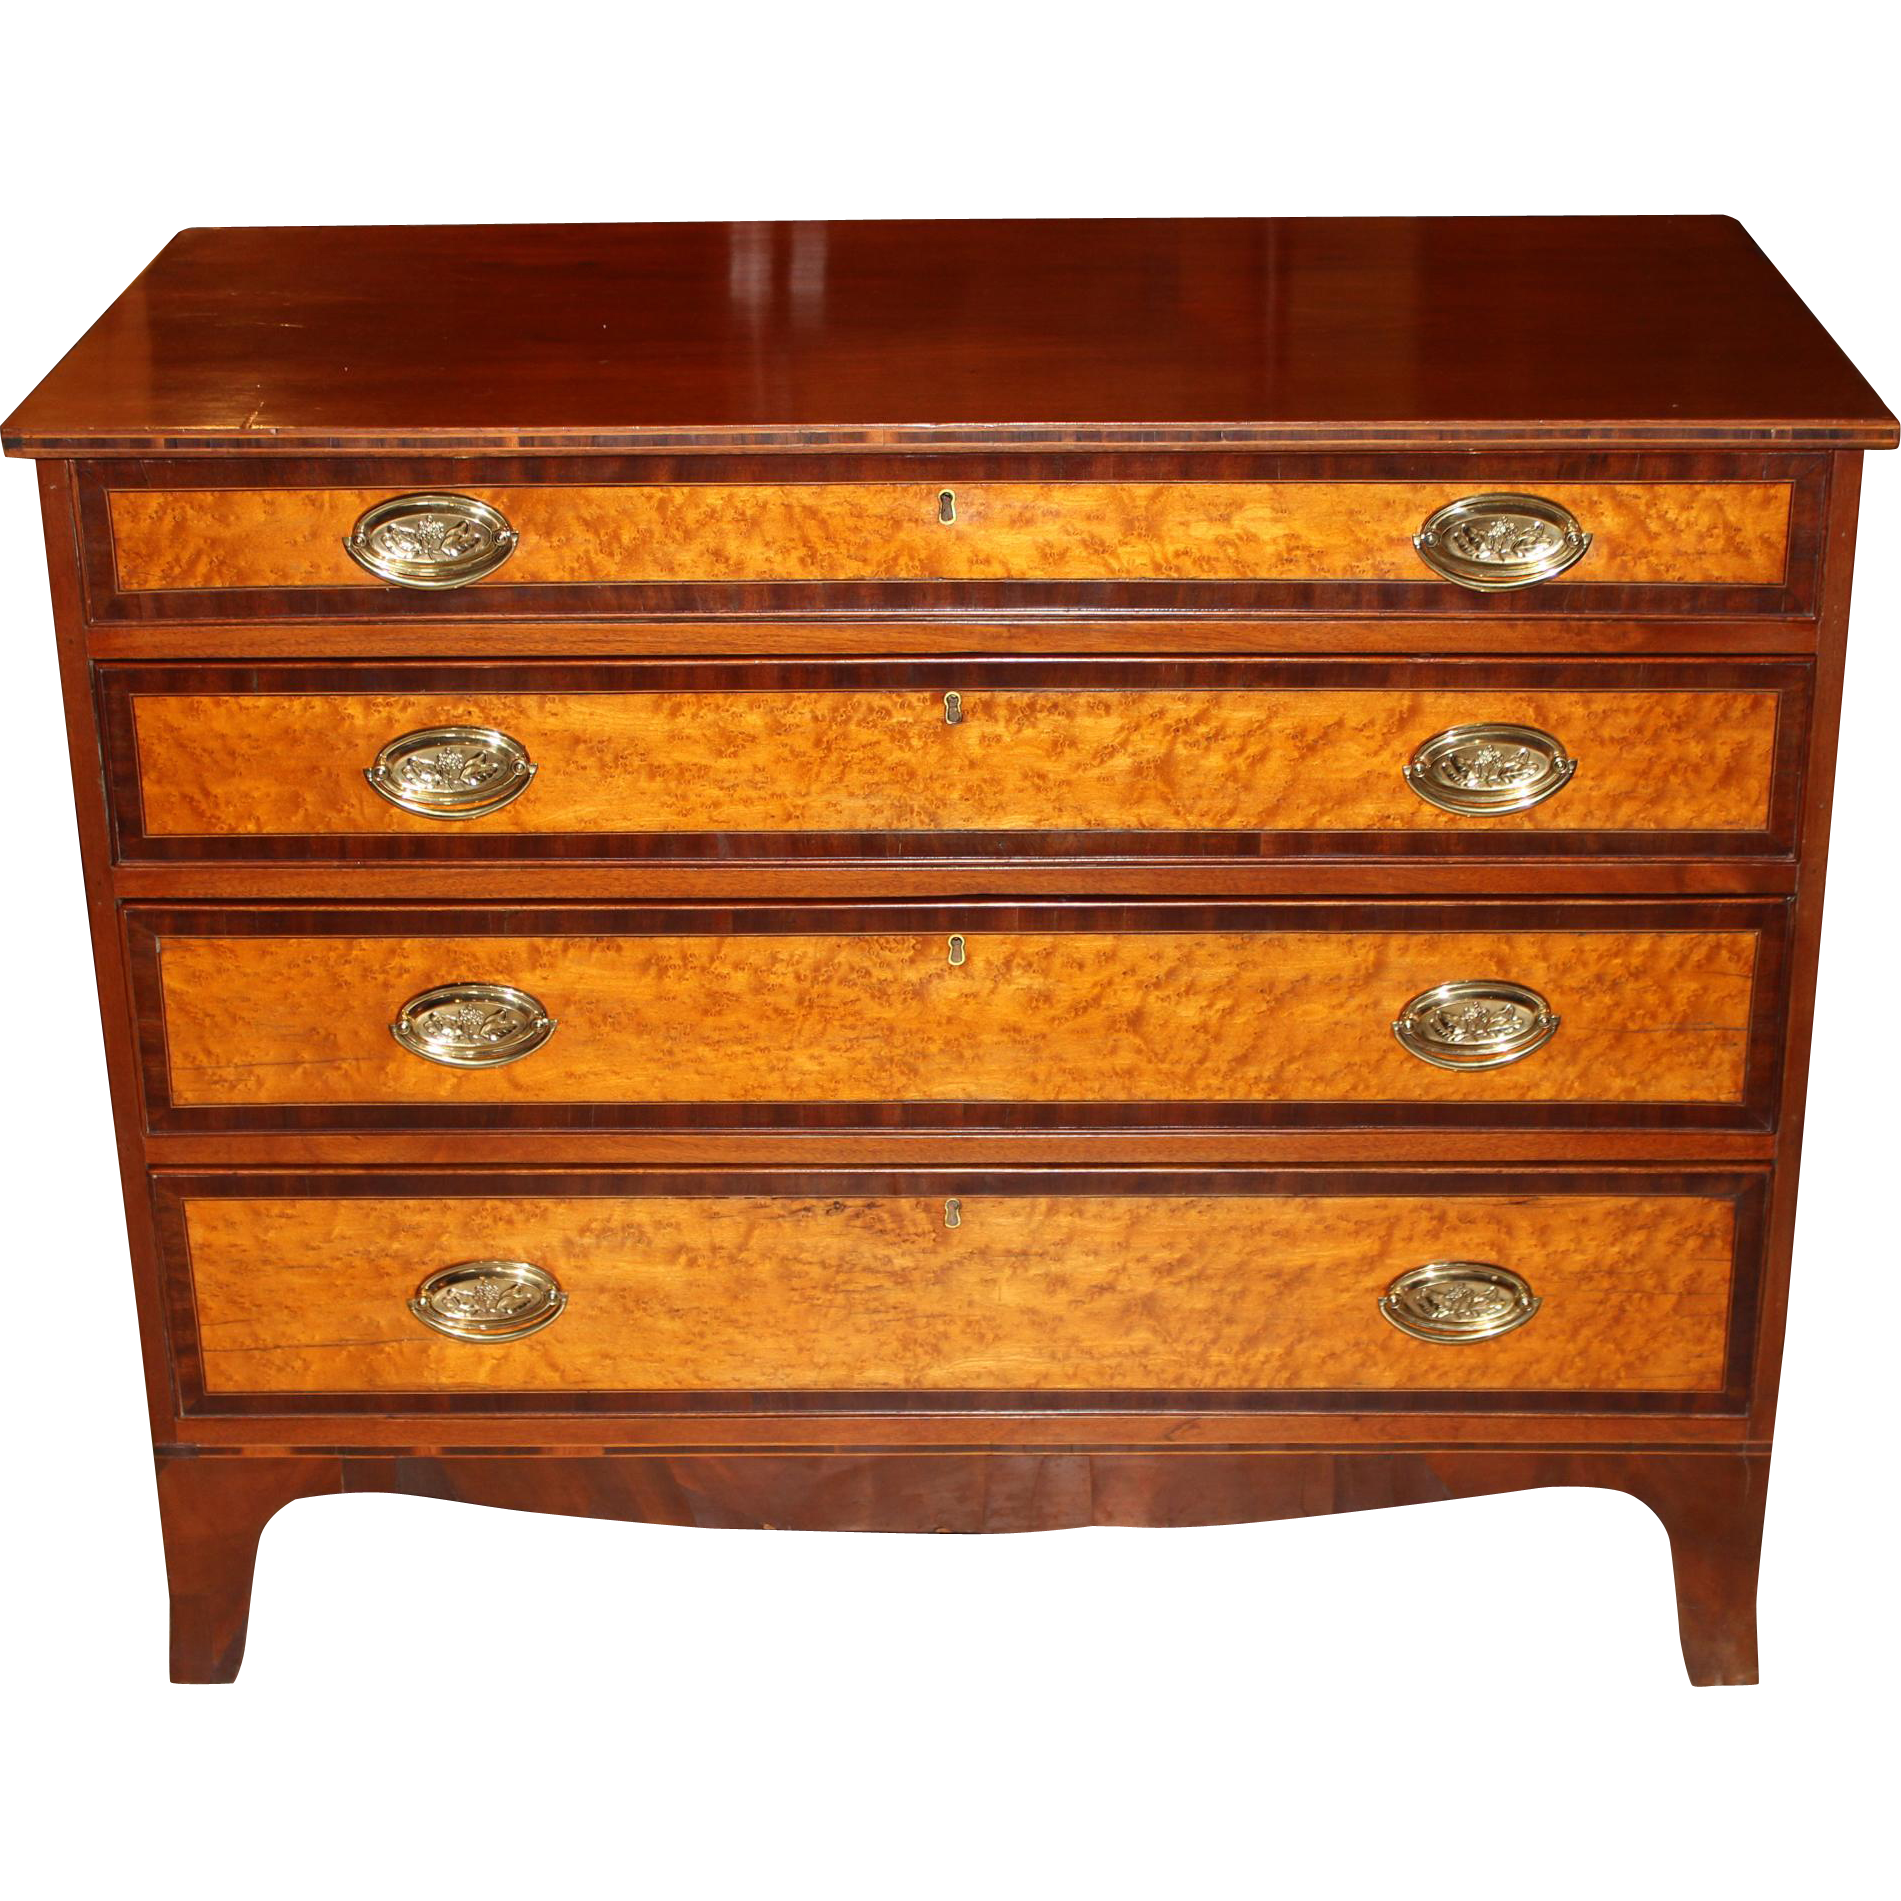 Federal Period Hepplewhite Chest of Drawers with Birdseye Maple Drawer Fronts